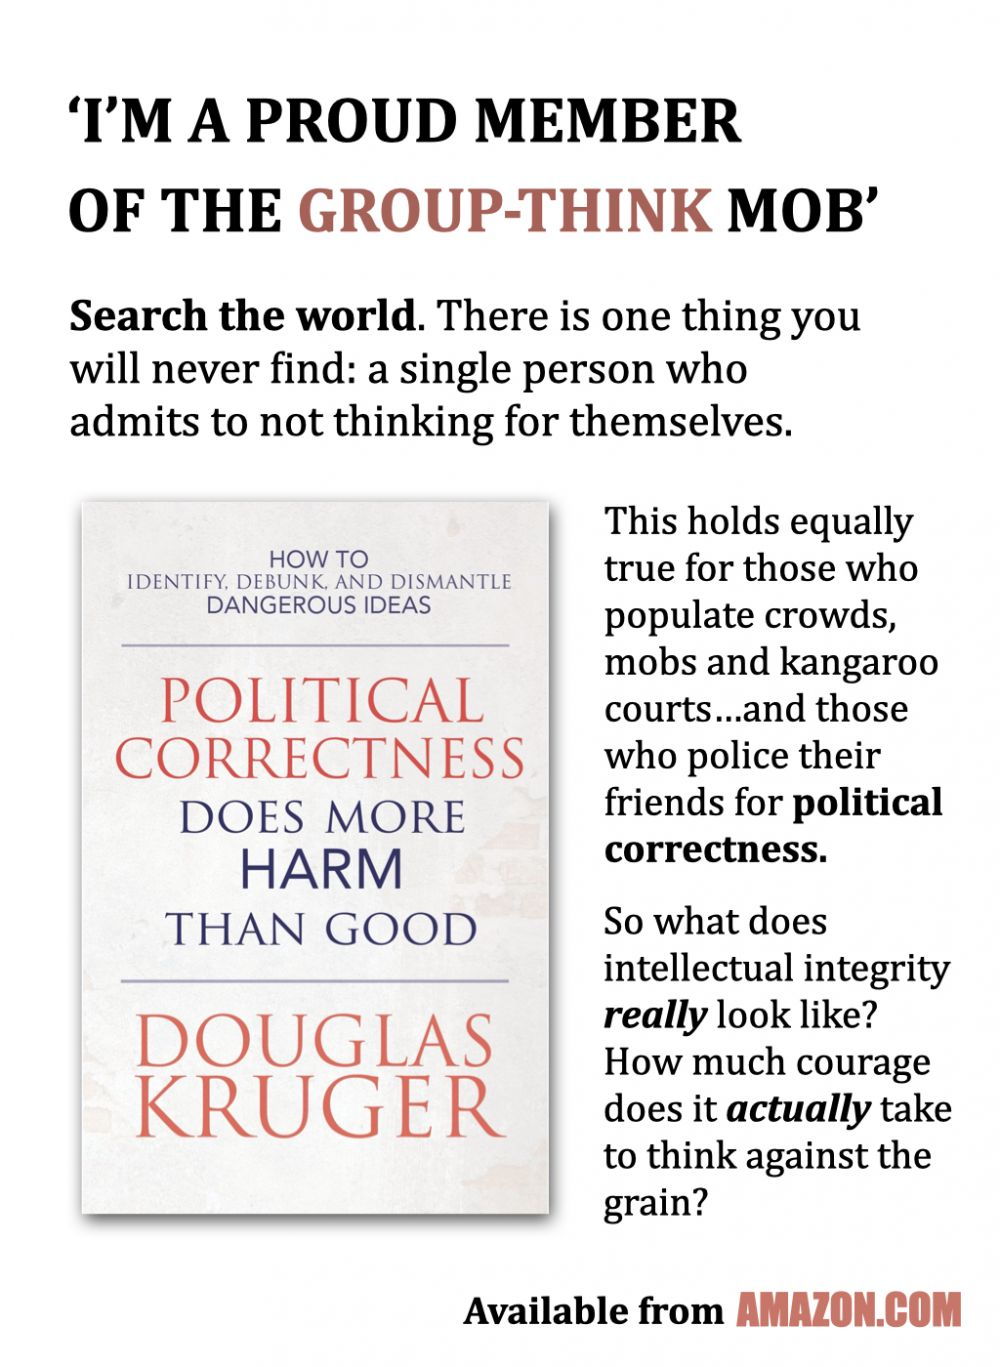 Political Correctness and Groupthink